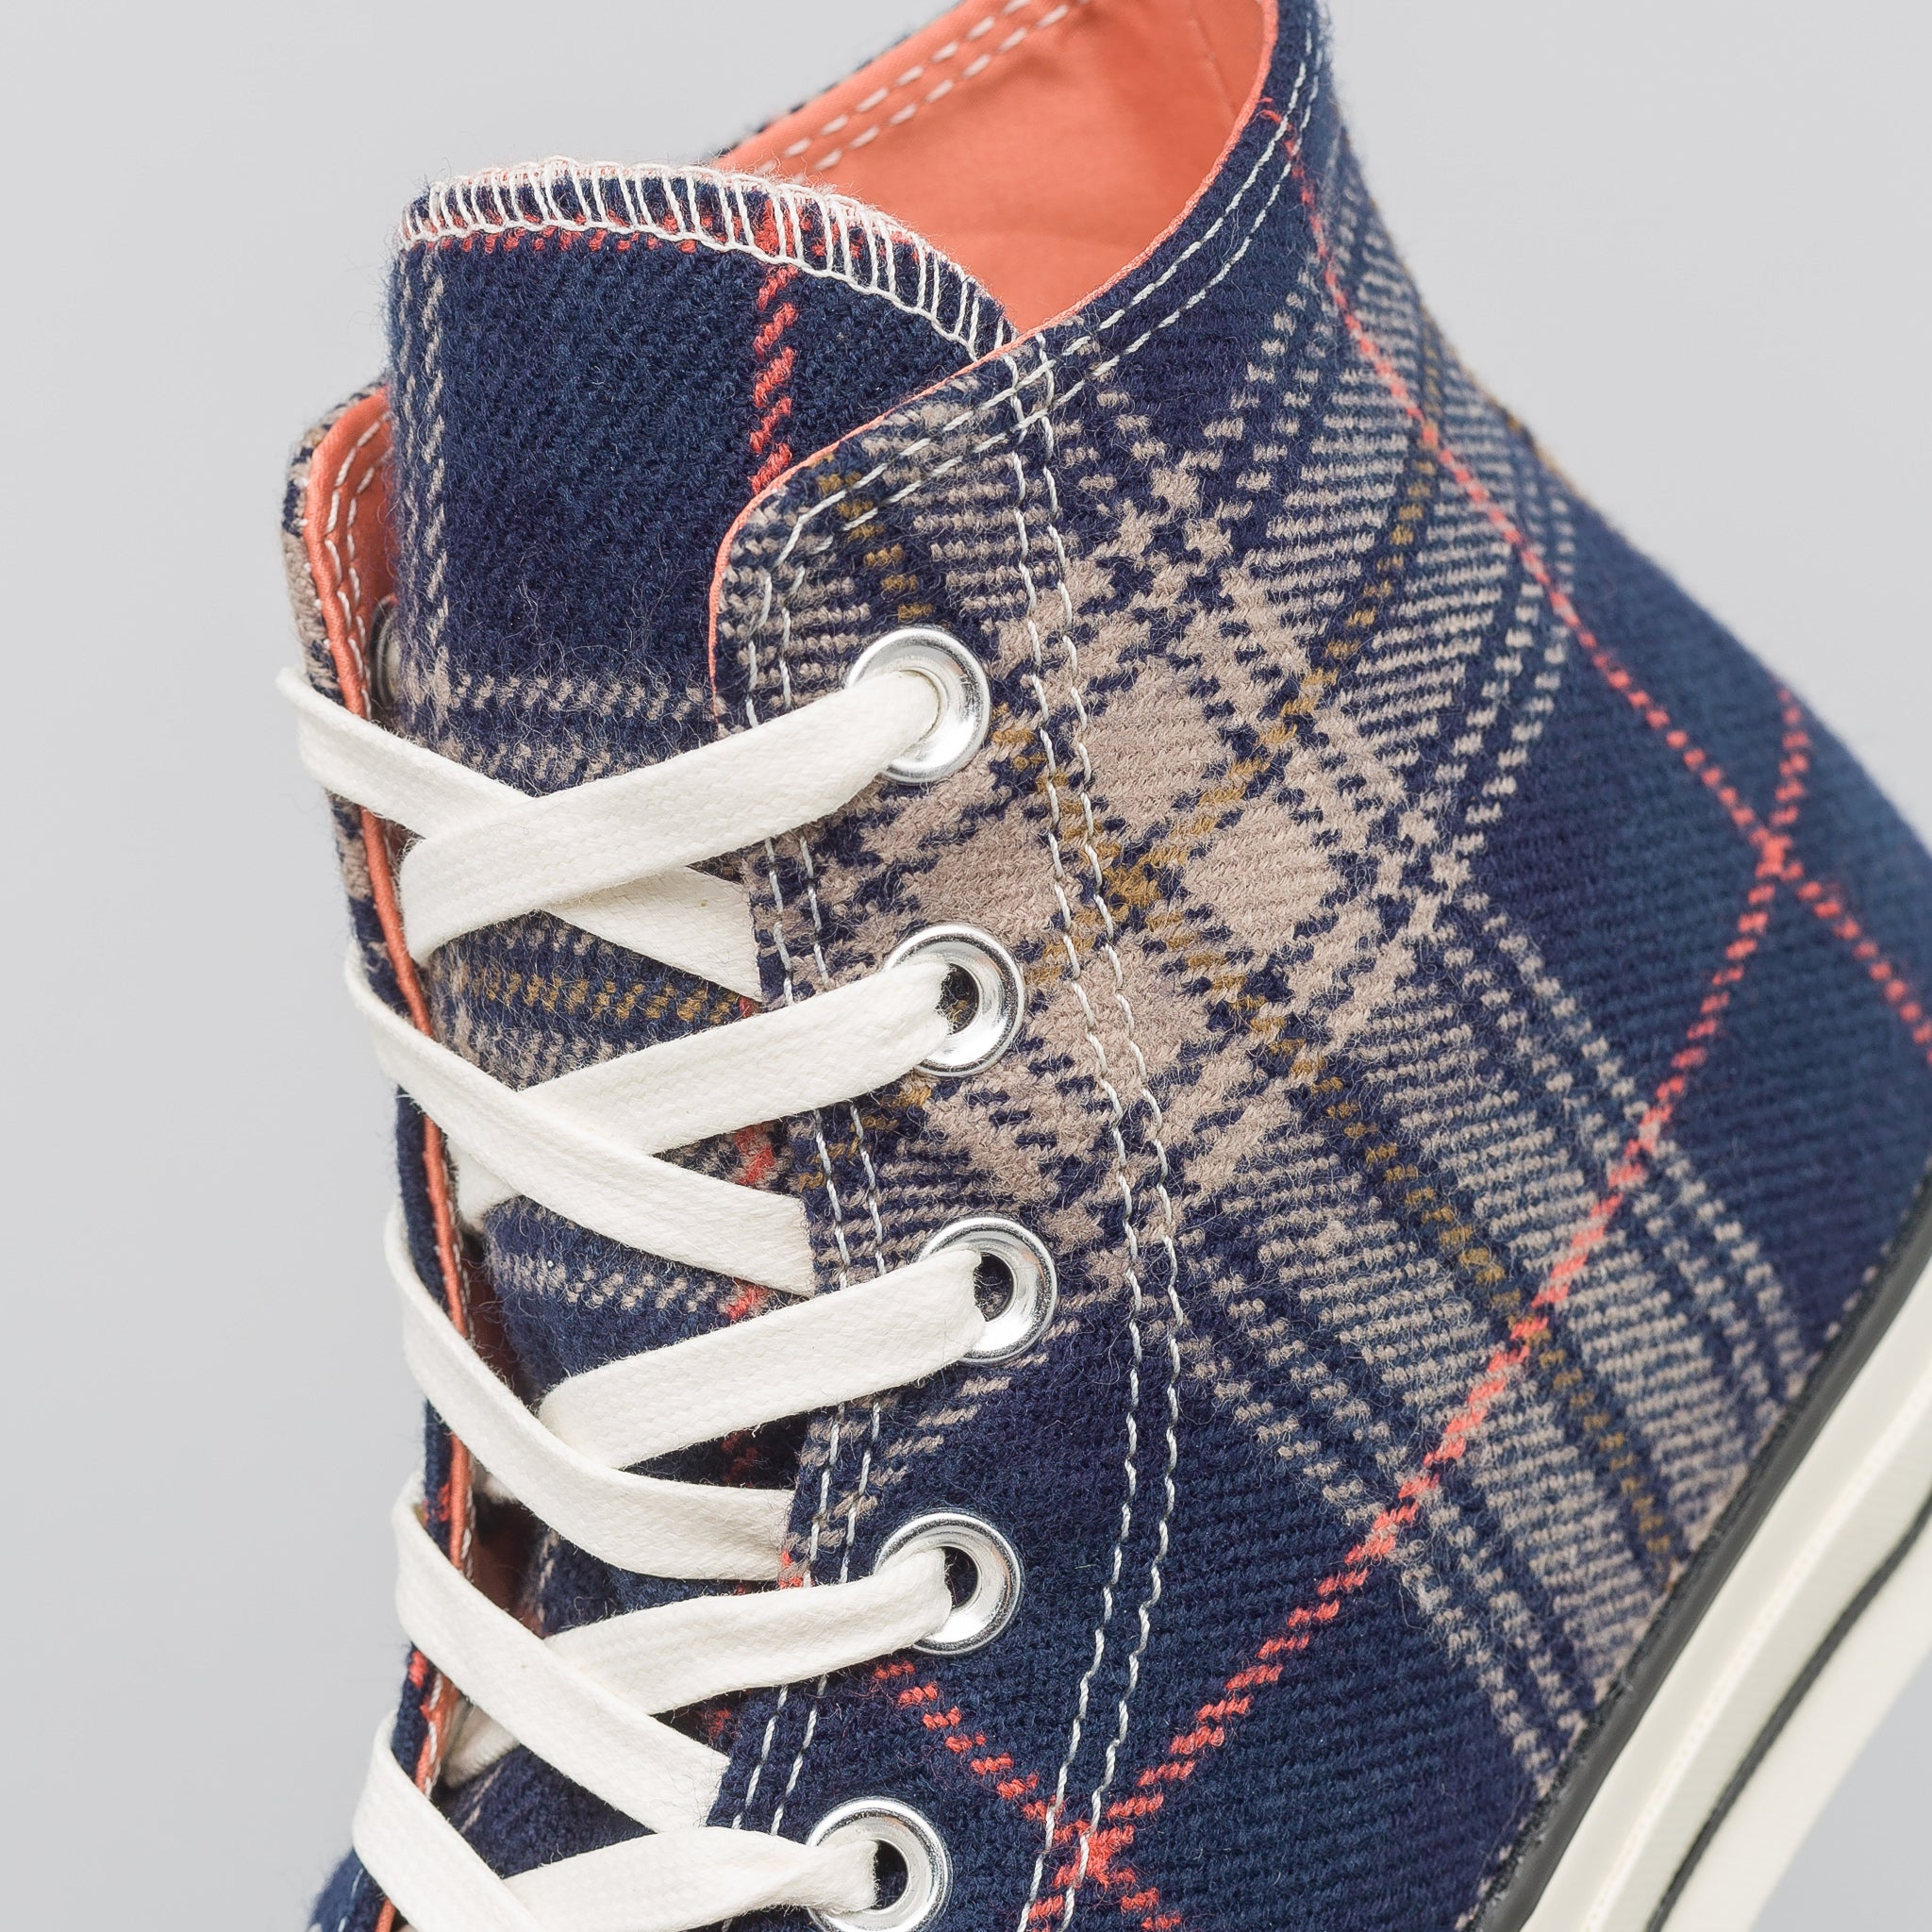 Chuck 70 Hi in Navy/Terracotta Red